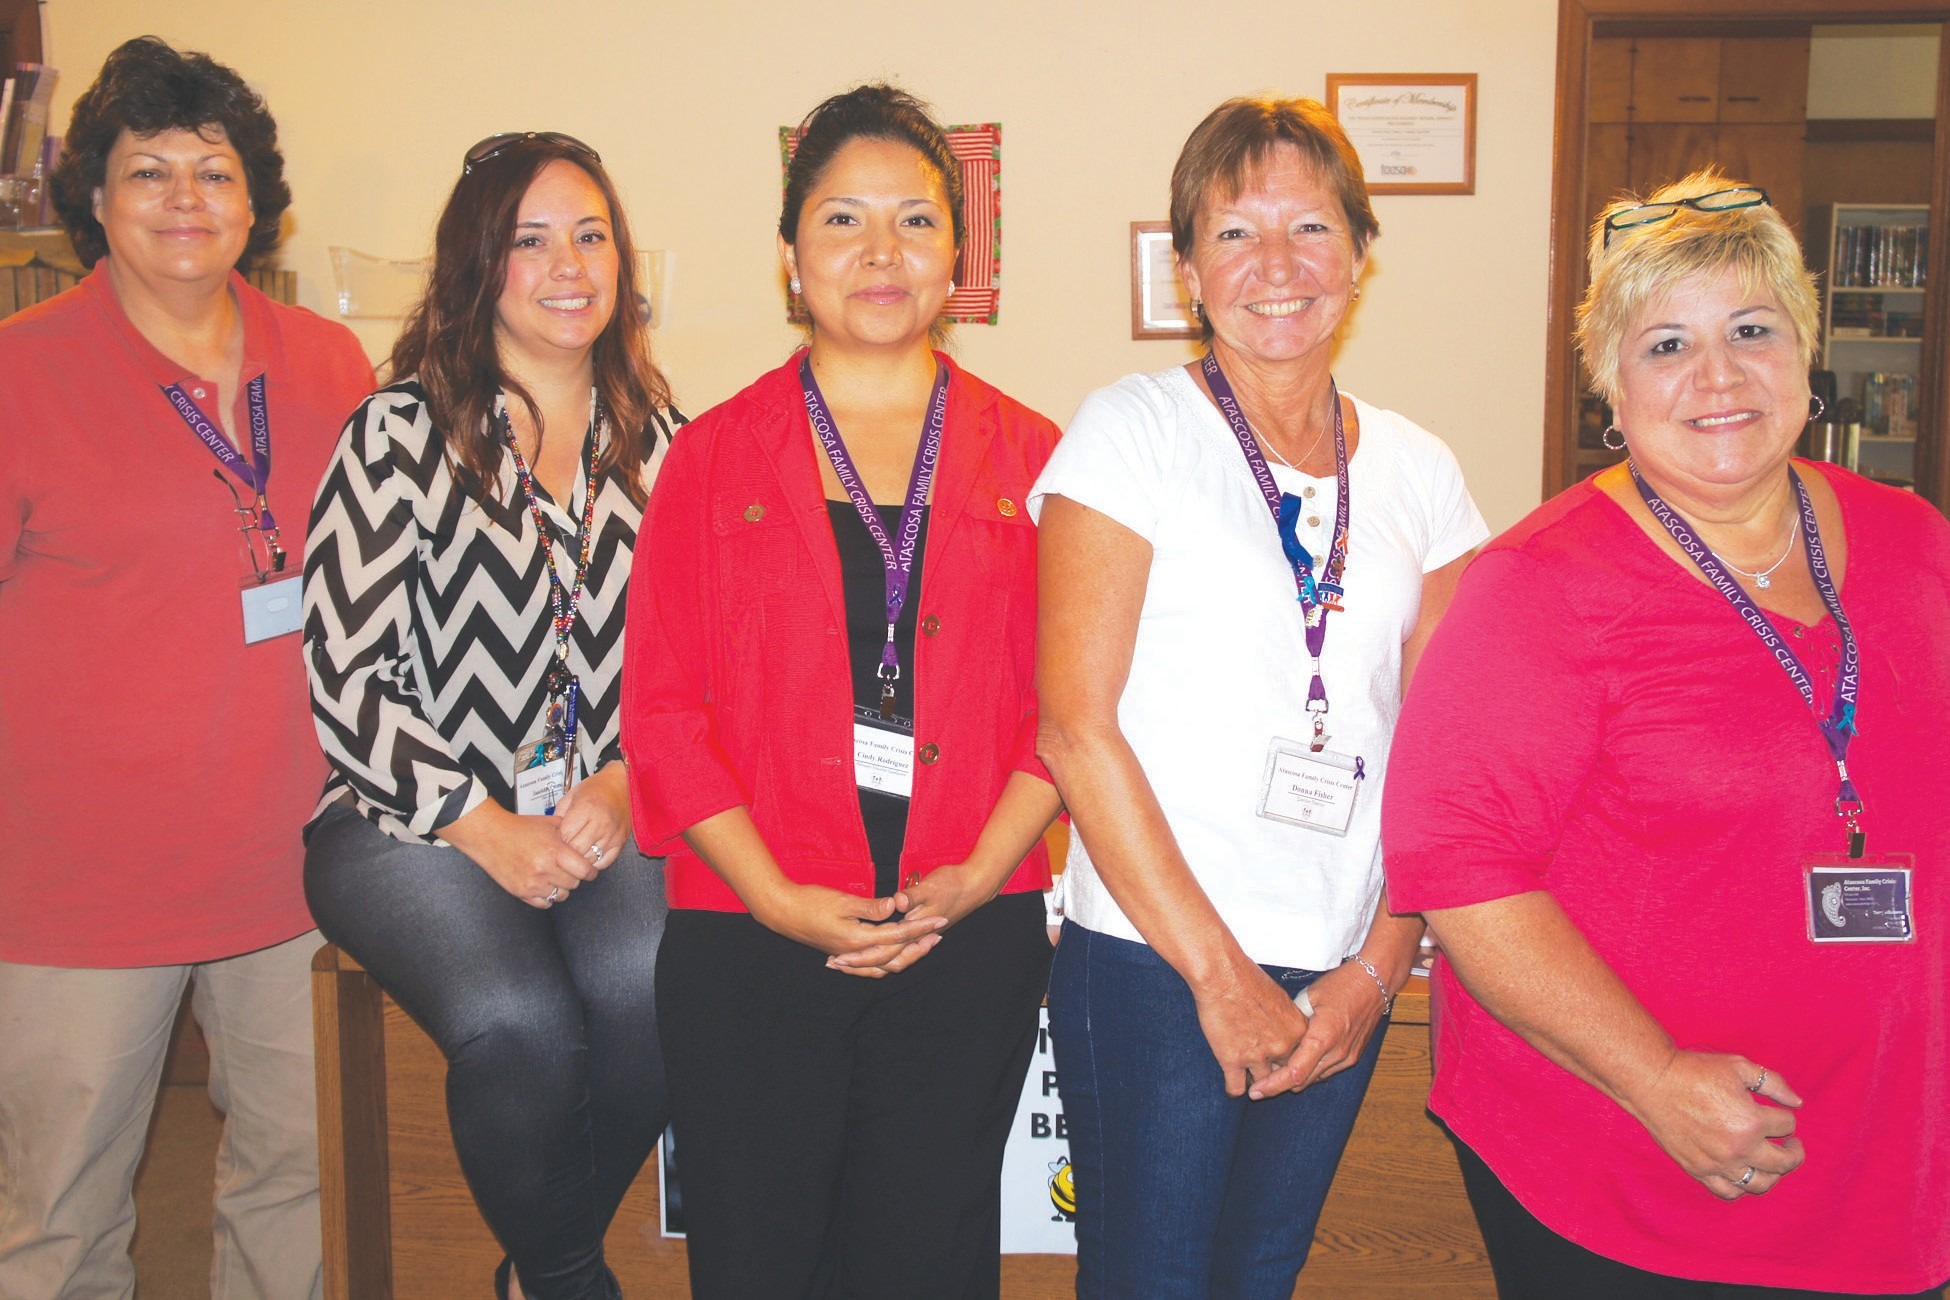 Pictured are, left to right: Lisa Krejci, Imelda Gomez, Cindy Rodriguez, Donna Fisher and Terry Villanueva. Not pictured is Shawnene Edmondson.